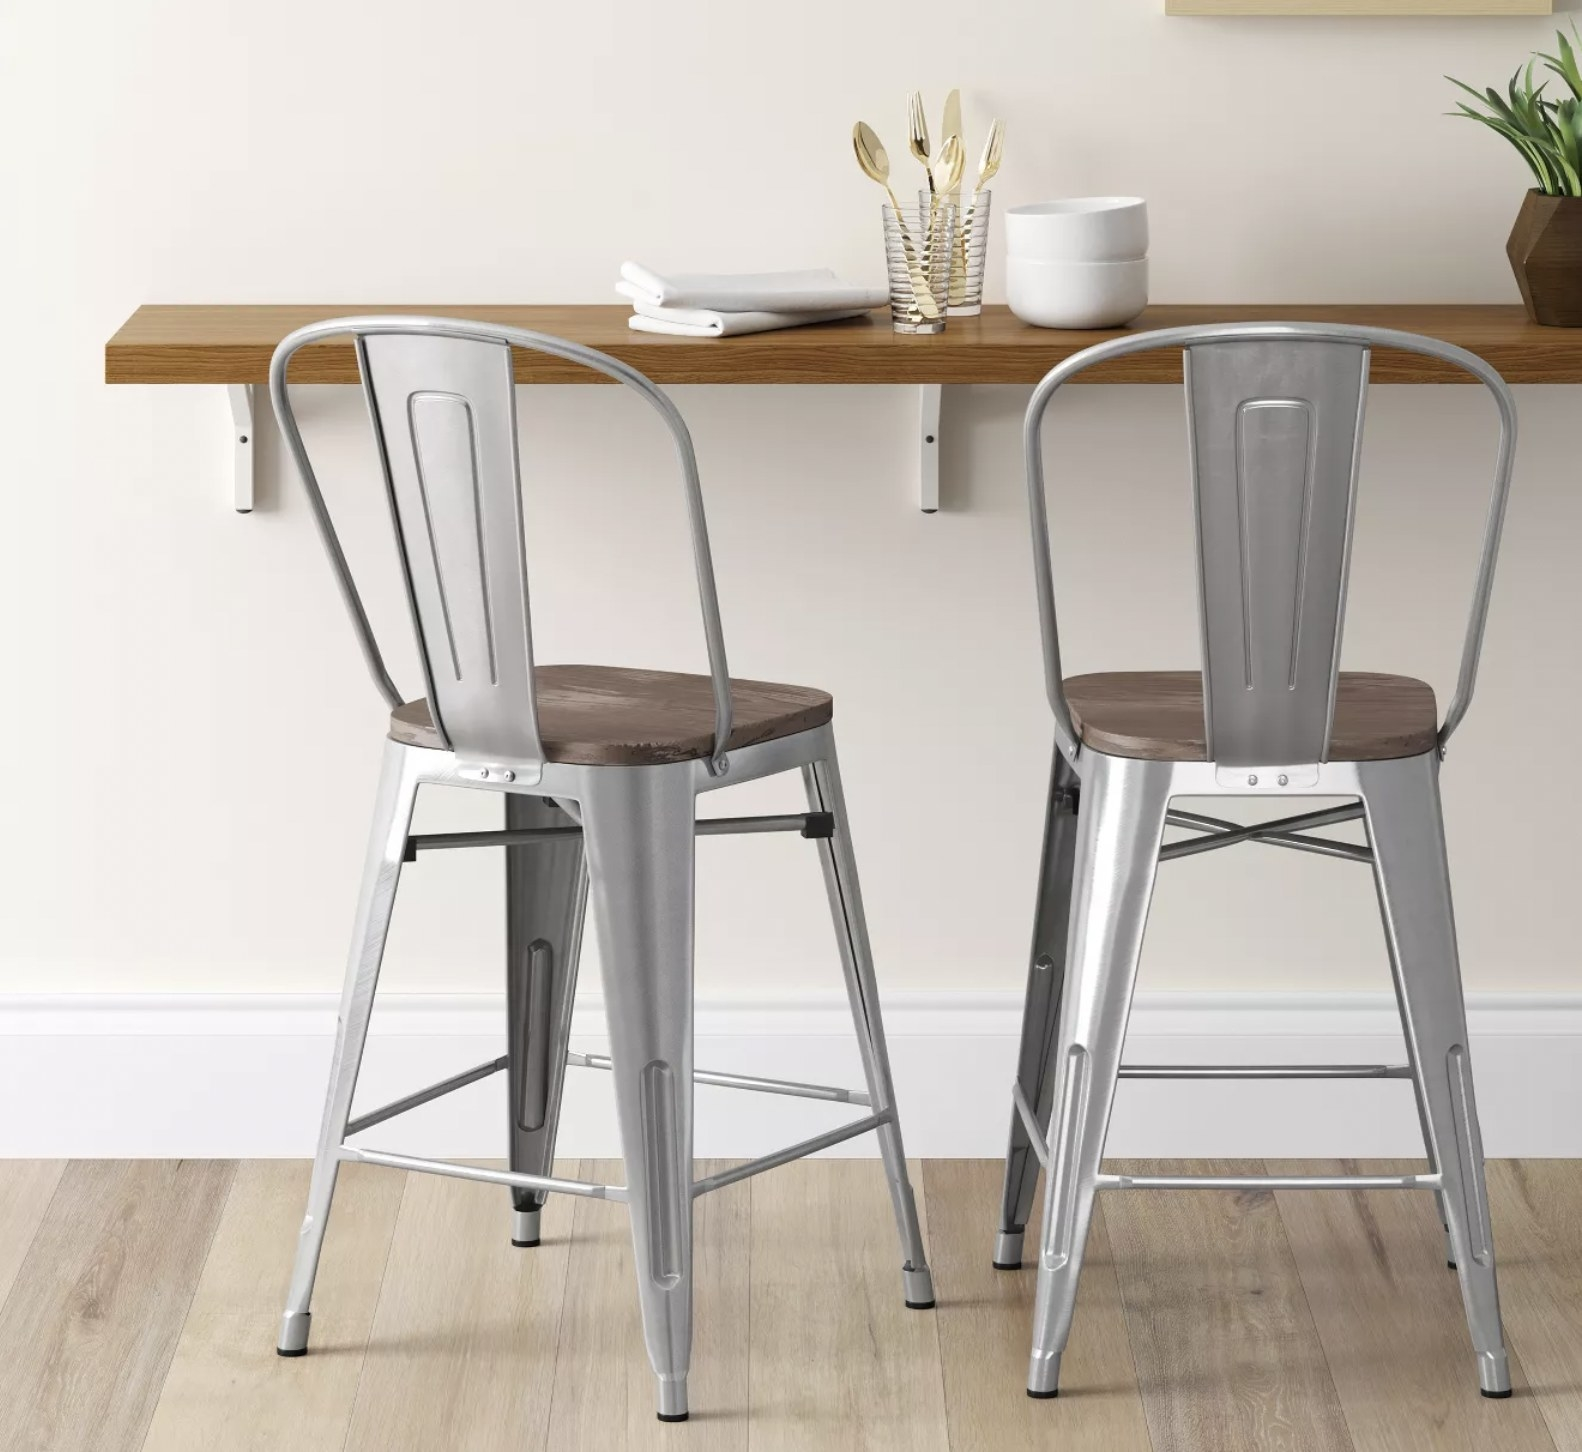 two silver metal bar stools with metal legs, a backrest, and a wooden seat, propped in front of a bar